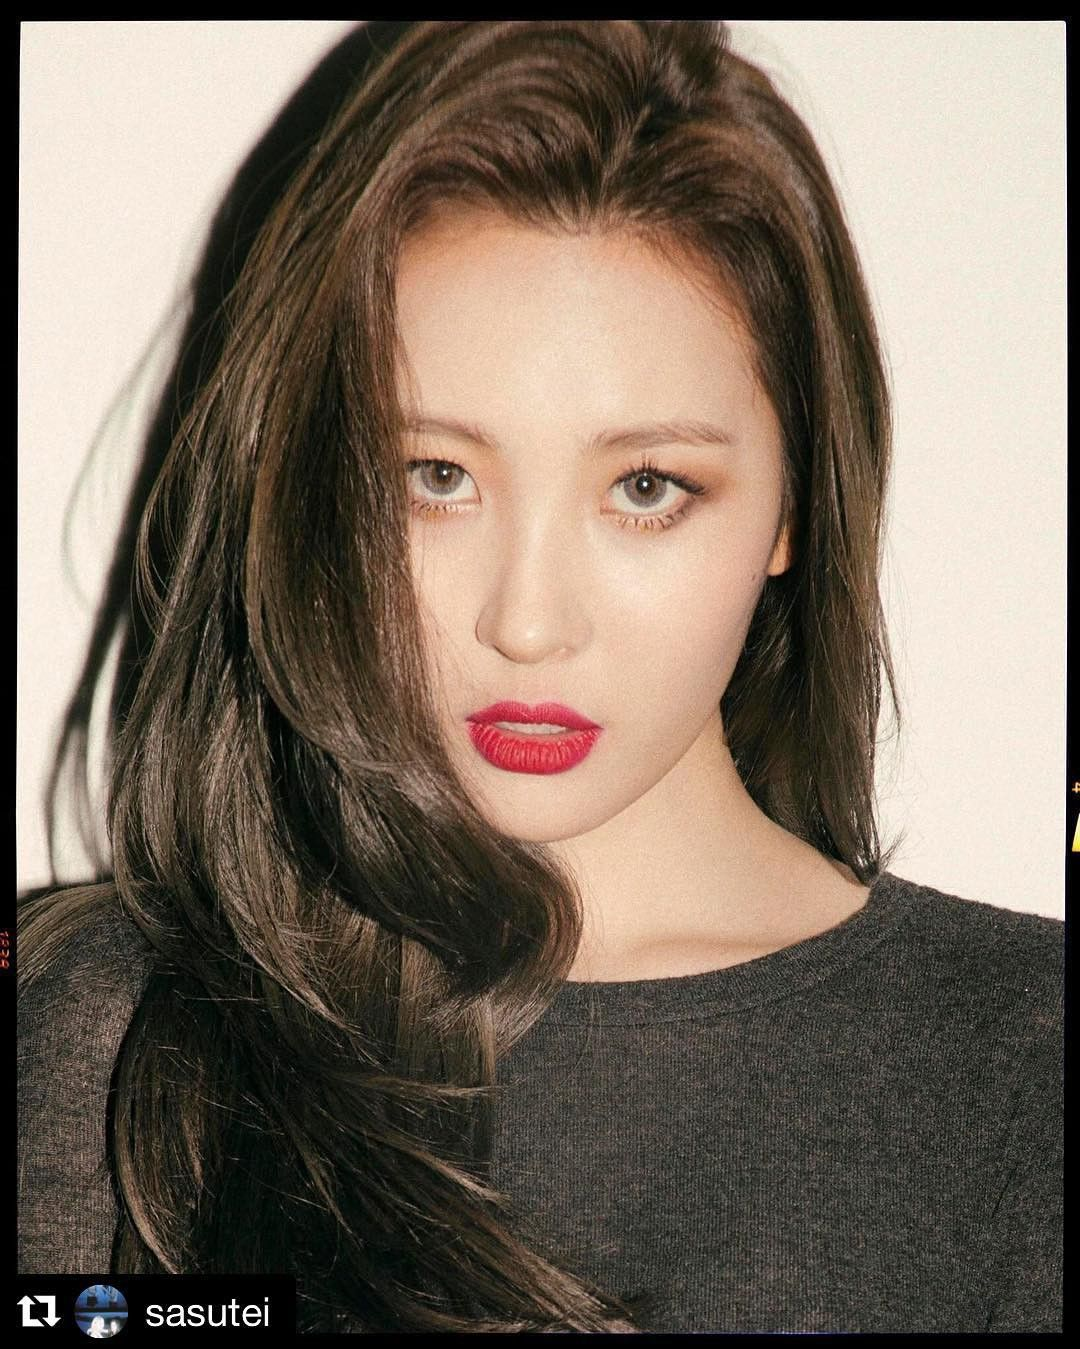 Pin by Taemoonえク園 on ∆ Sunmi ∆ Girl, Beauty inspiration